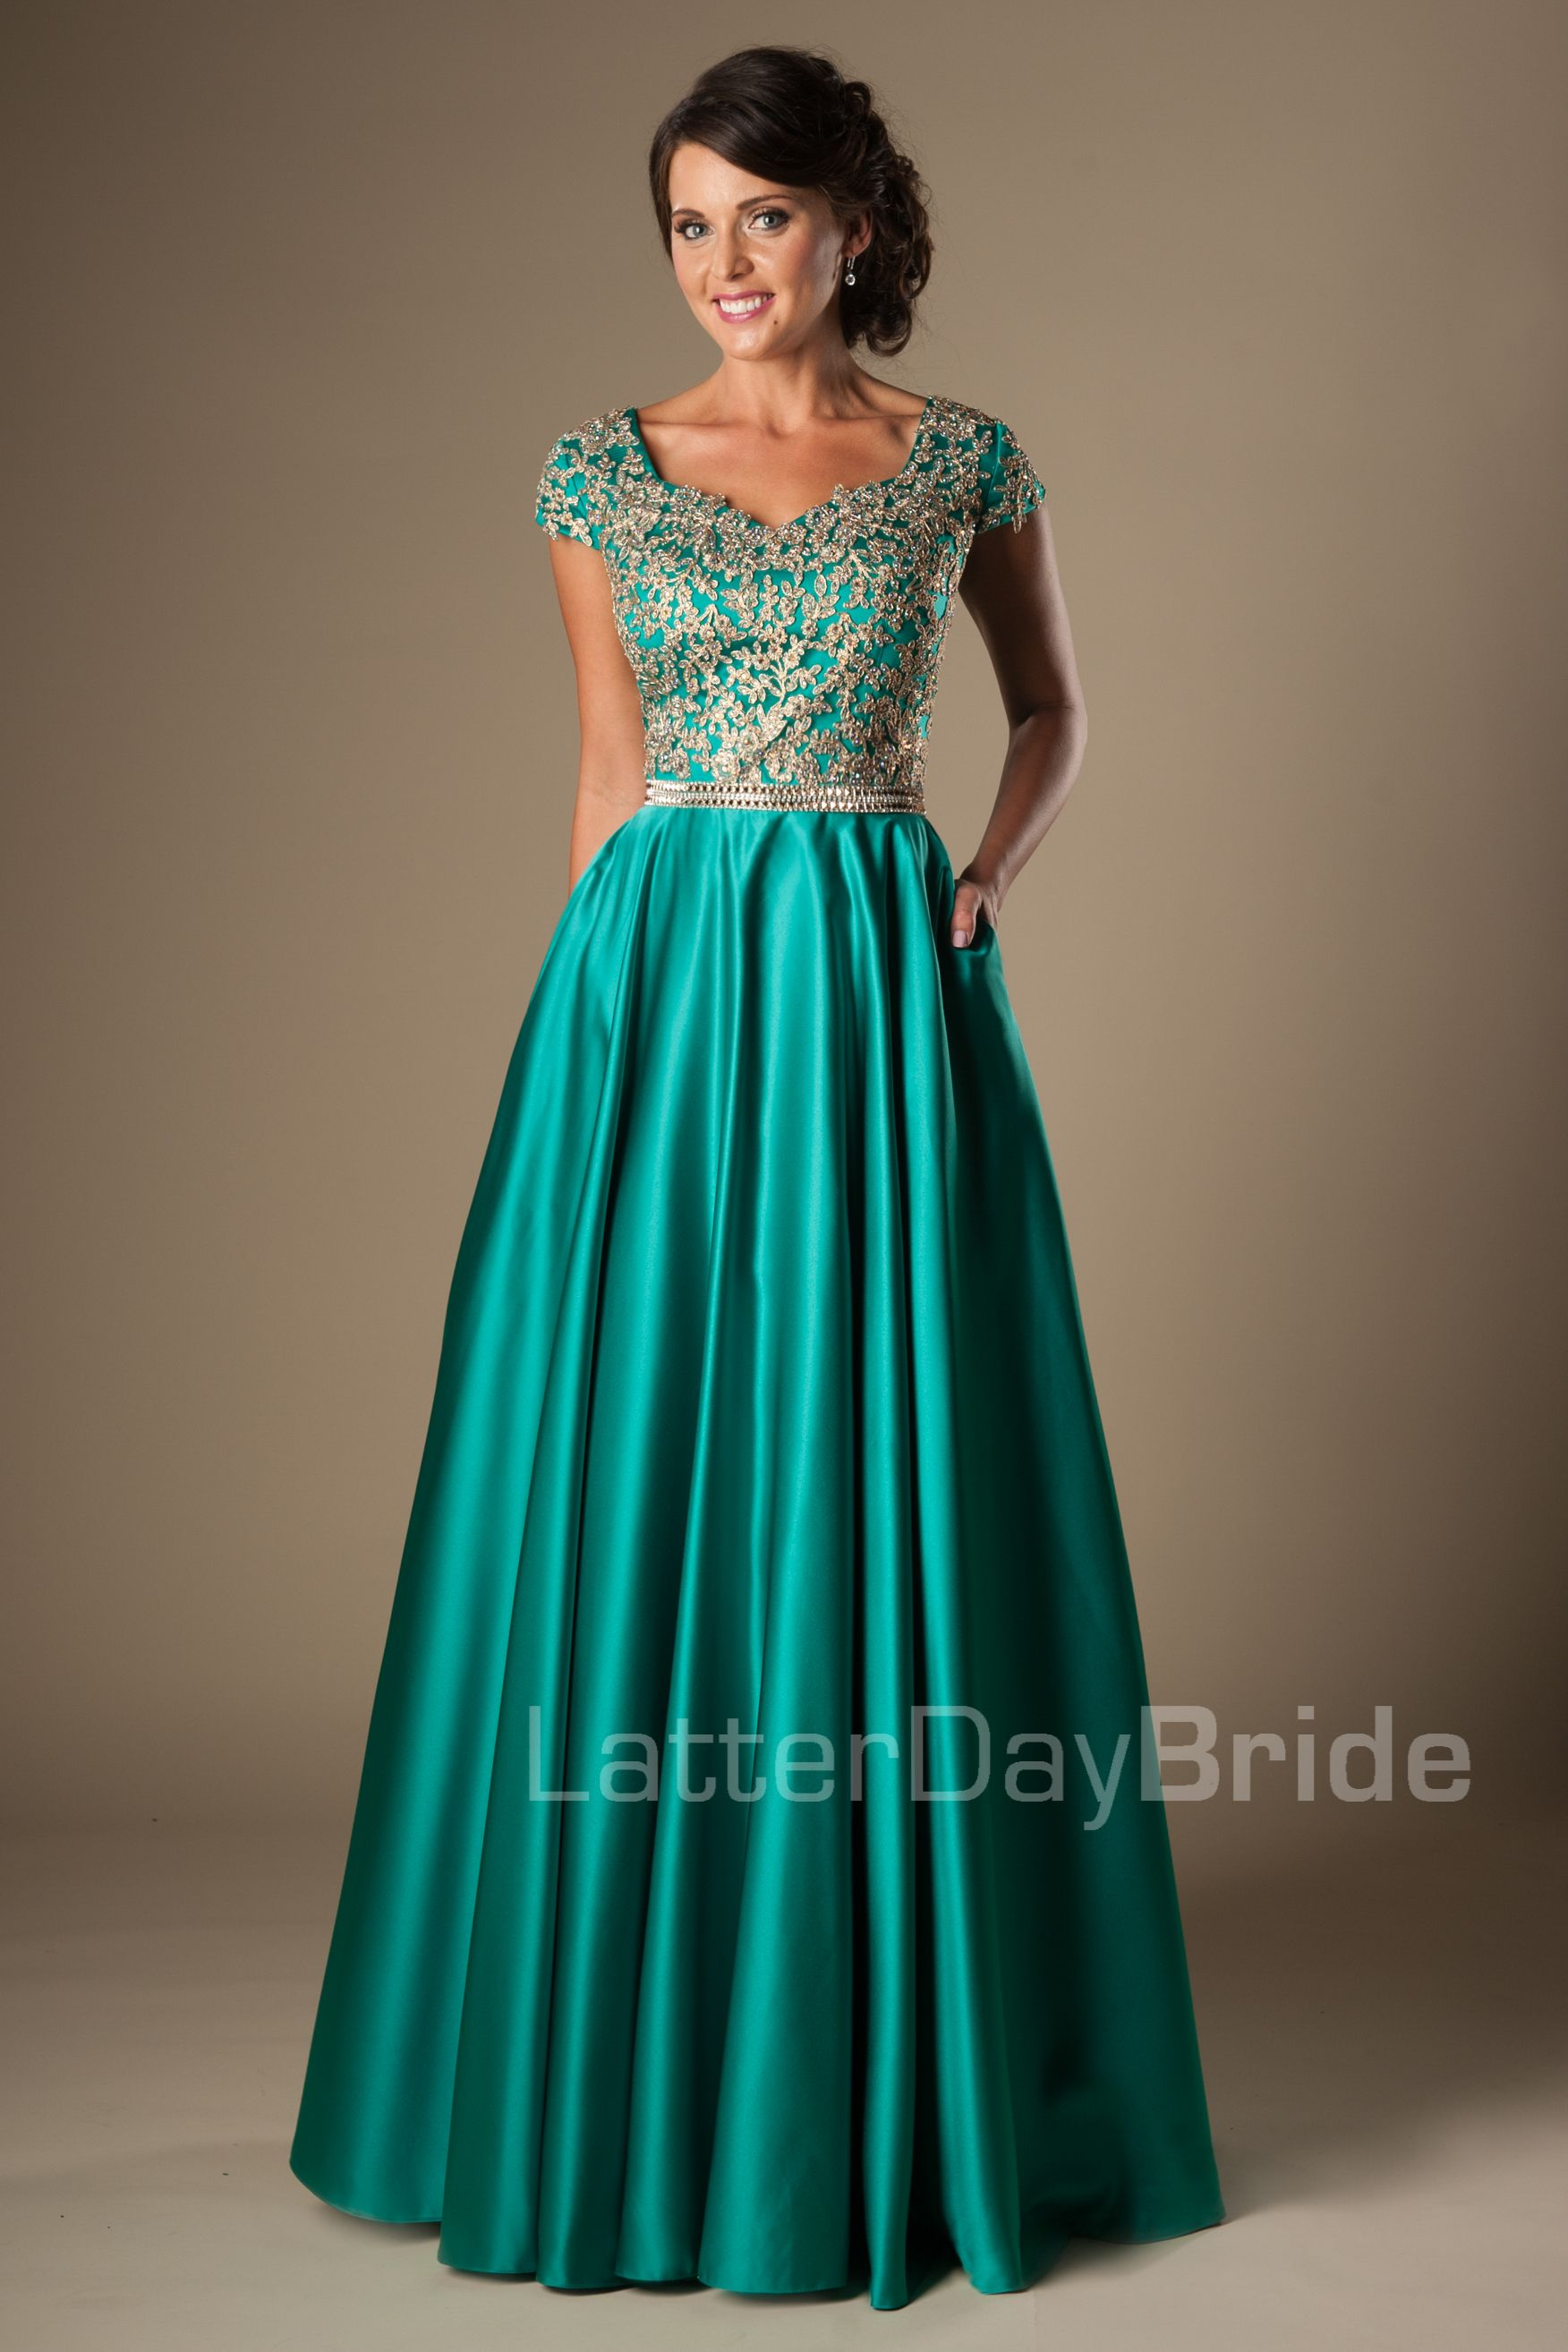 modest-prom-dress-emily-front-emerald.jpg | Prom | Pinterest | A ...